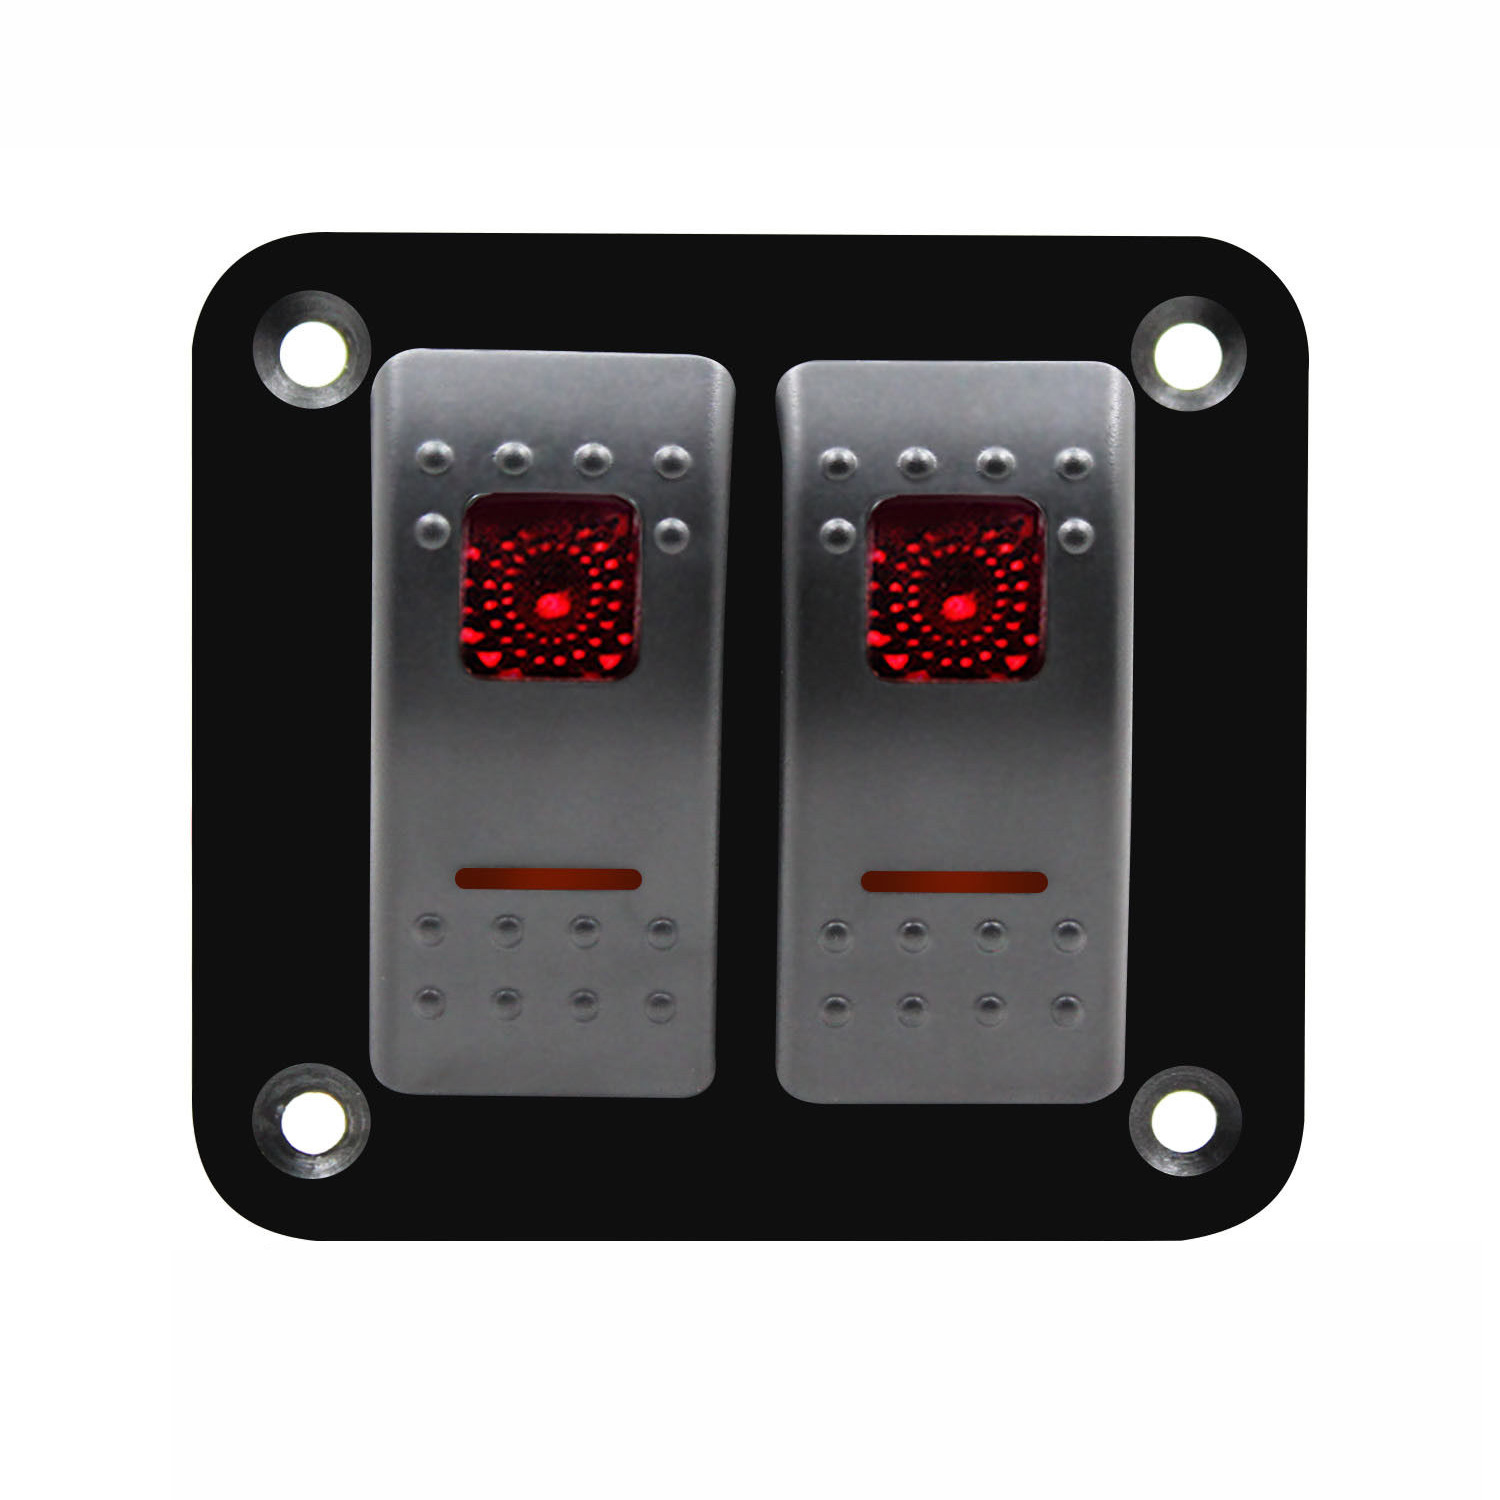 12V-24V Gang Red Color 2 Rocker Switch Panel Circuit Breaker Boat Marine IP66 Waterproof Pre-wired 10A Systems Circuit Breakers